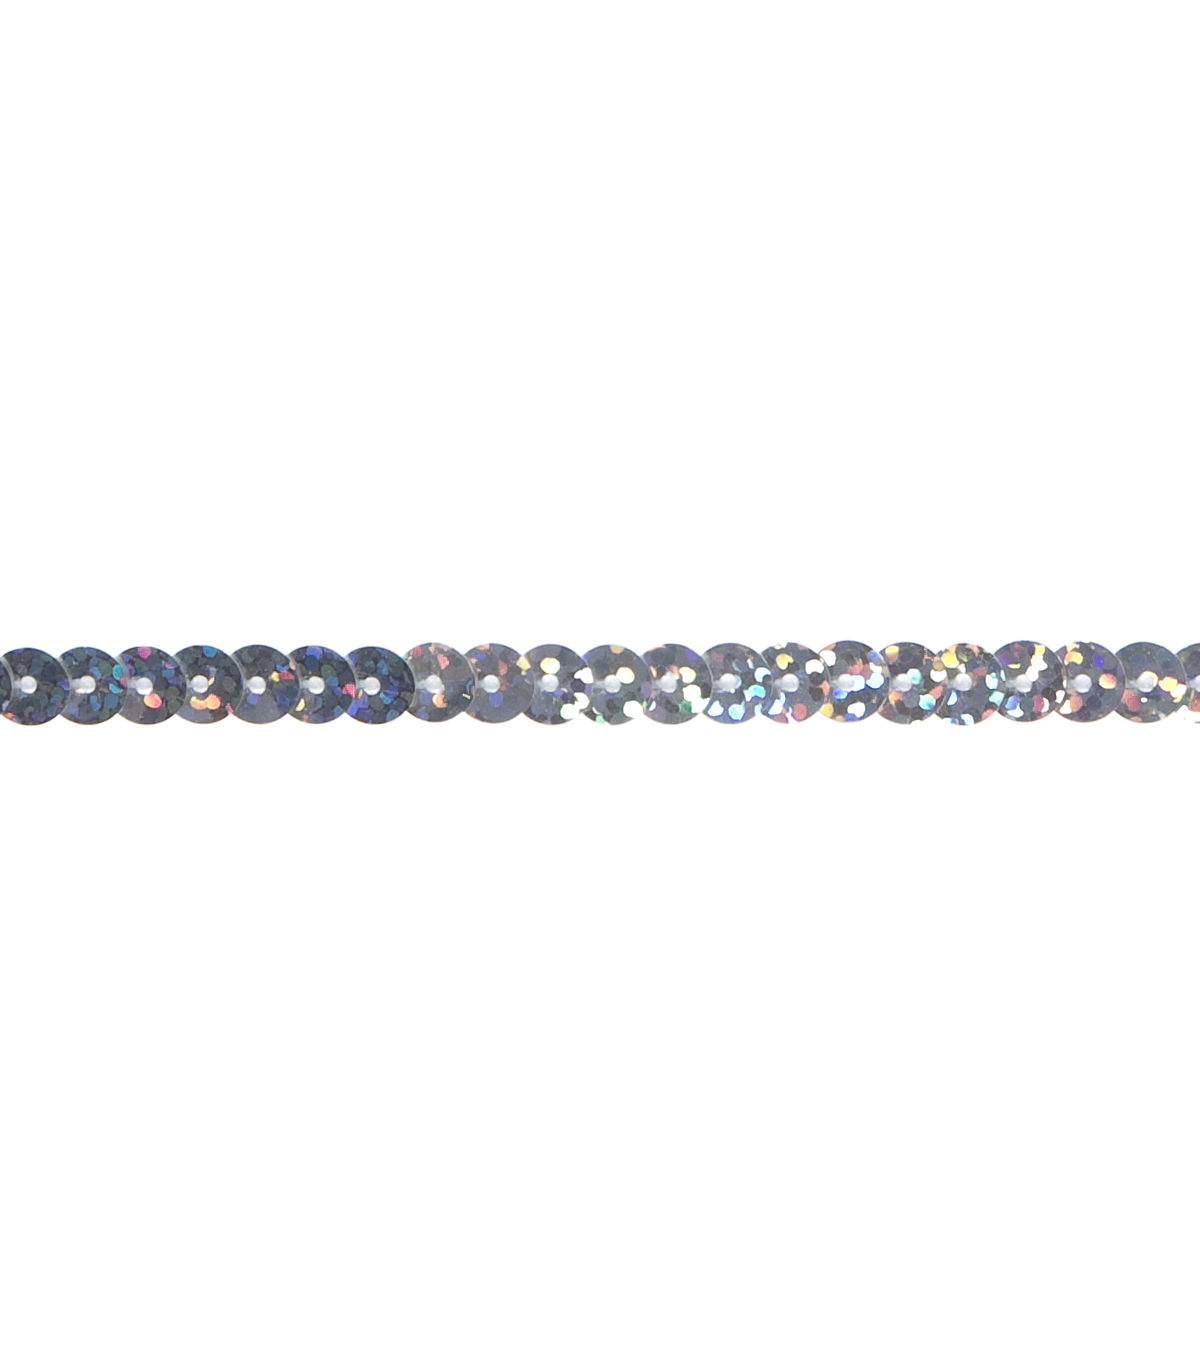 Single Sequin Holographic Silver 3 Yds Apparel Trim